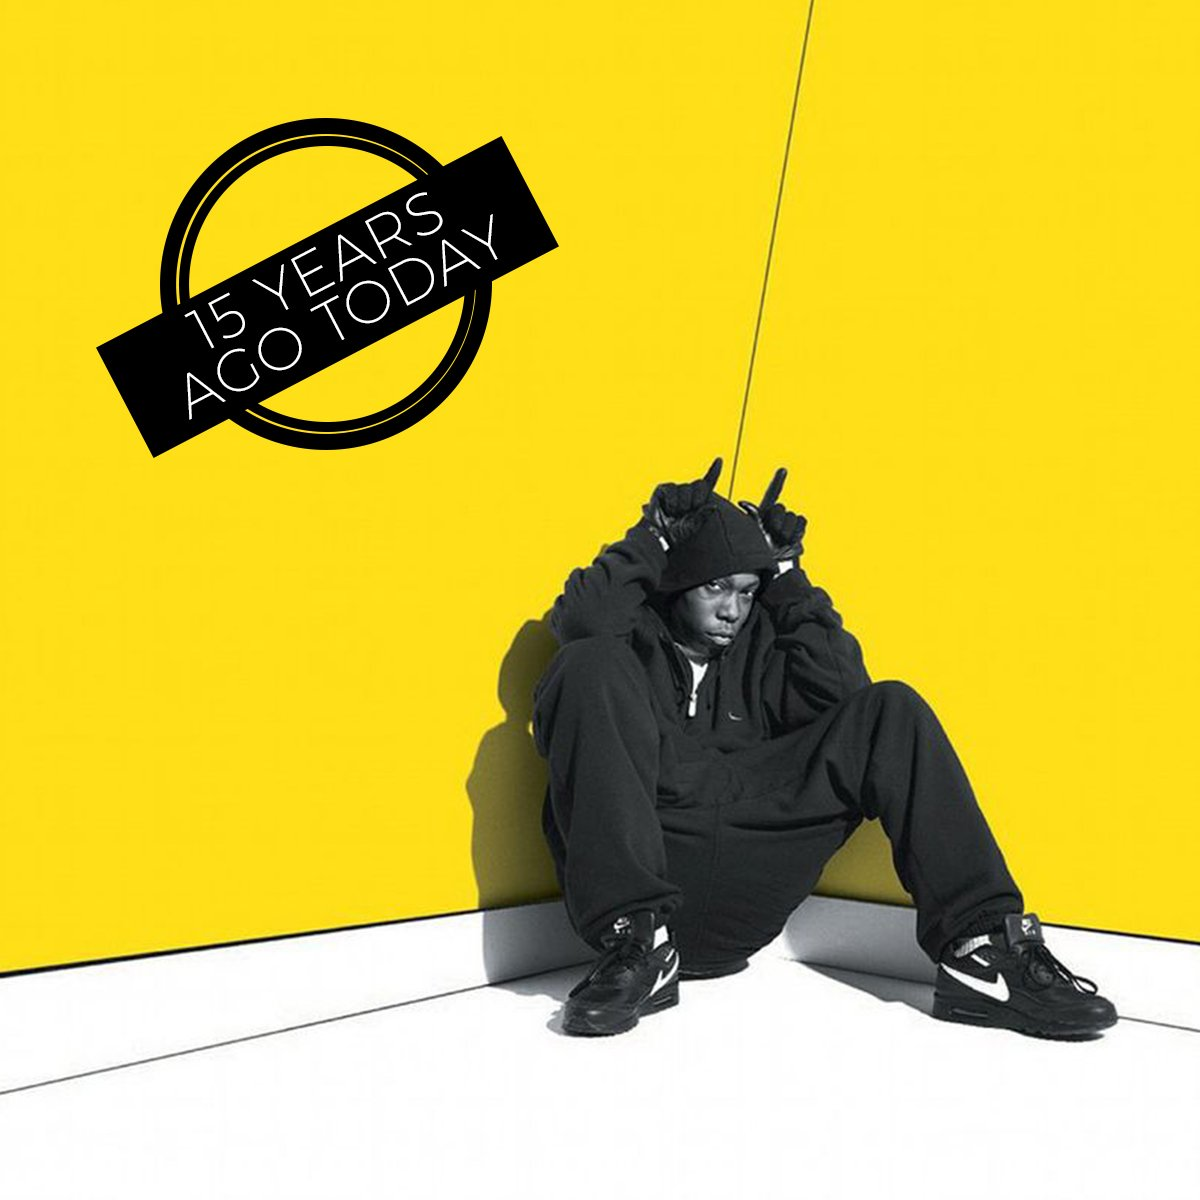 15 years ago today it all started for @DizzeeRascal when he released his debut album Boy In Da Corner